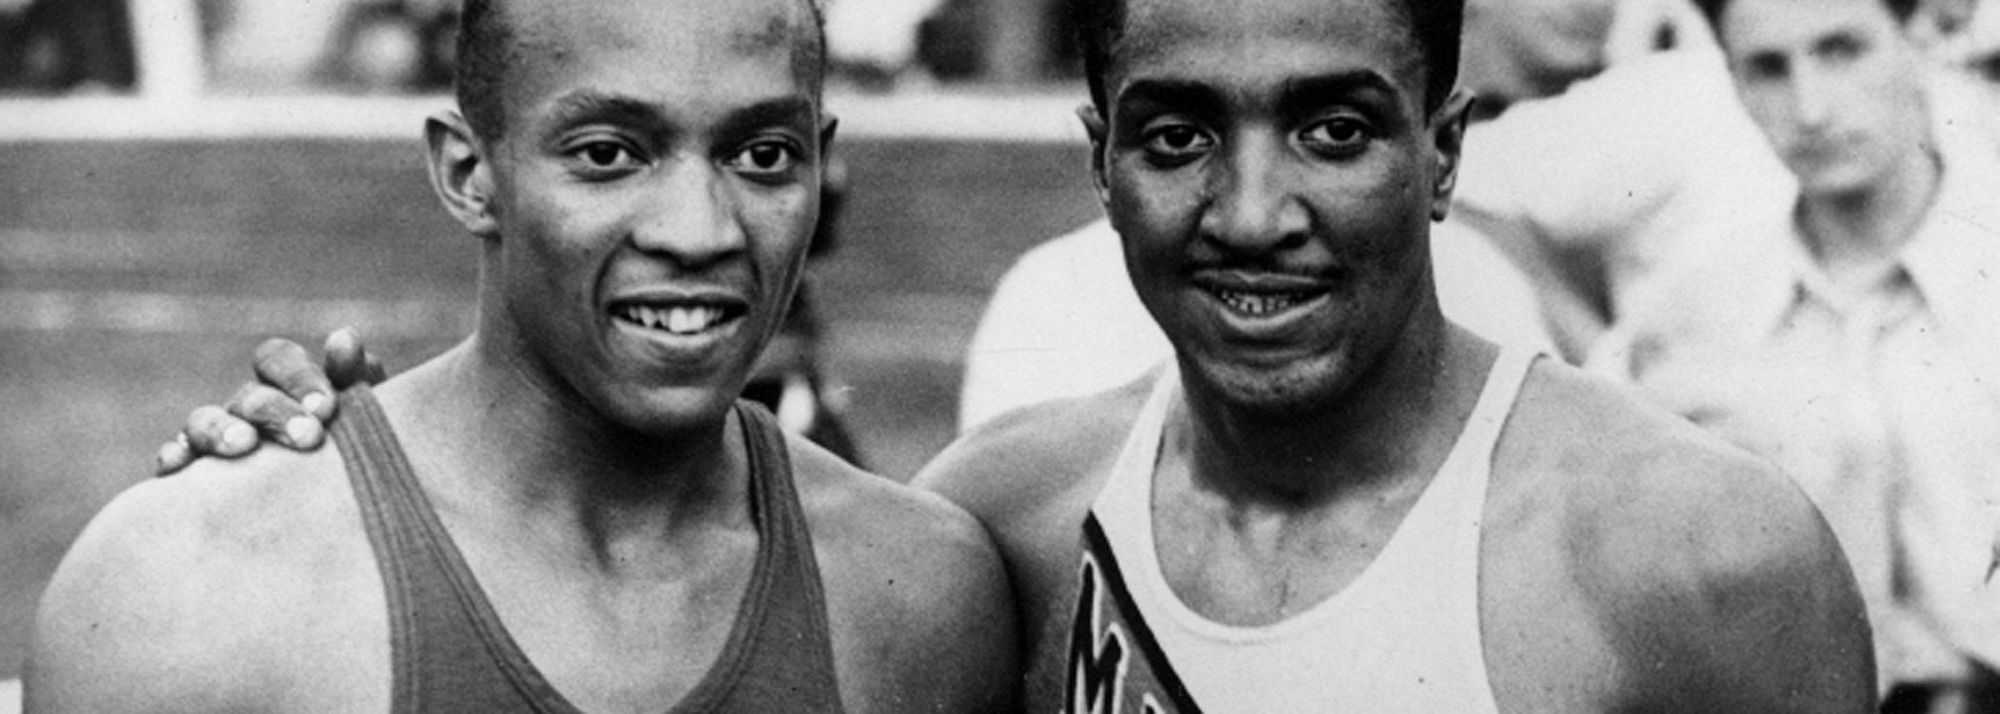 As the annual observance in the USA draws to a close, it's important to recall the Olympic legend and life-long public servant who was pivotal in its creation as the landmark event it has grown to become.